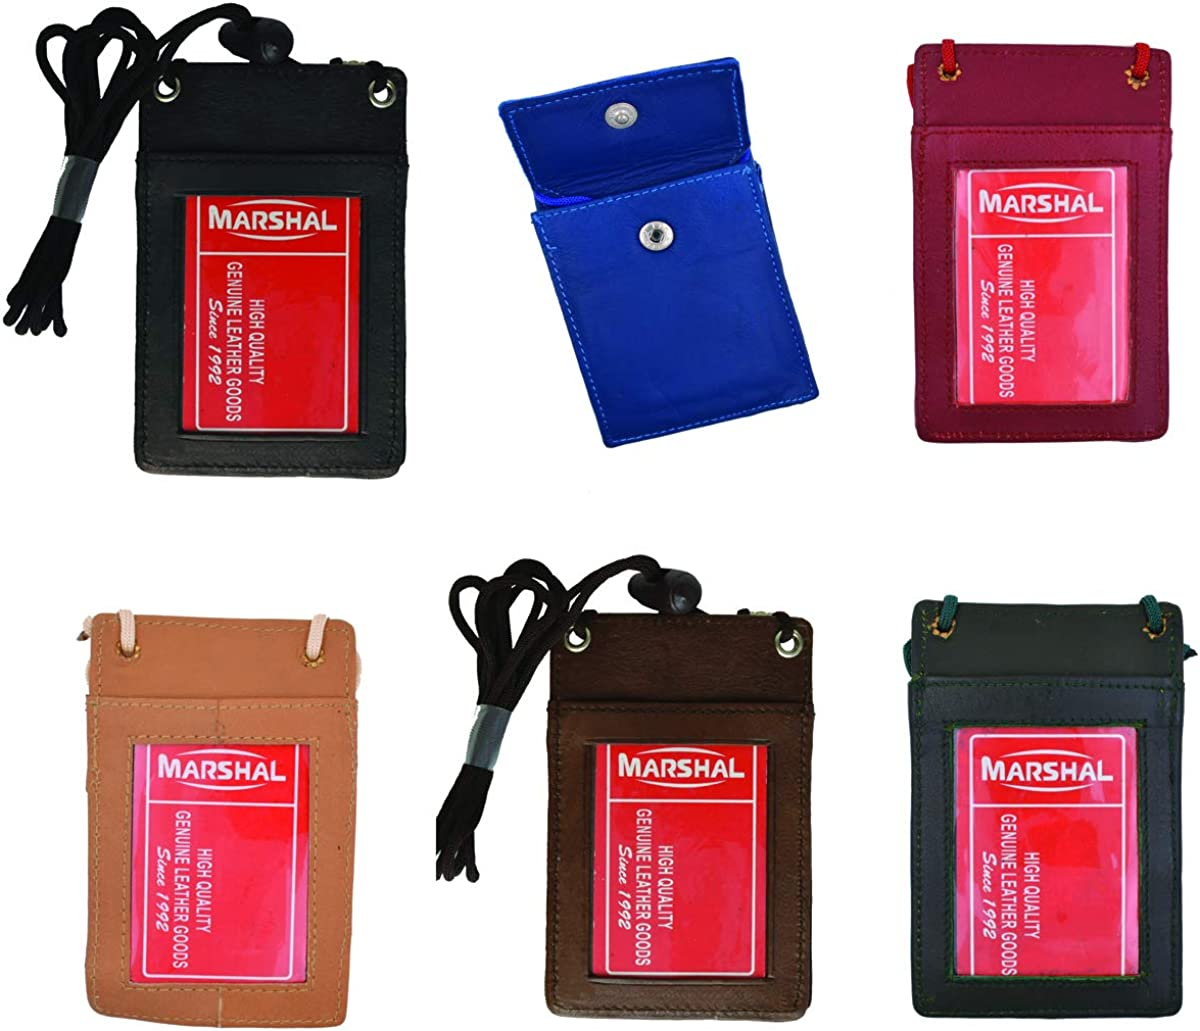 Wholesale Leather Neck SEAL limited product ID Badge Pouch favorite Credit Wallet Holder Card